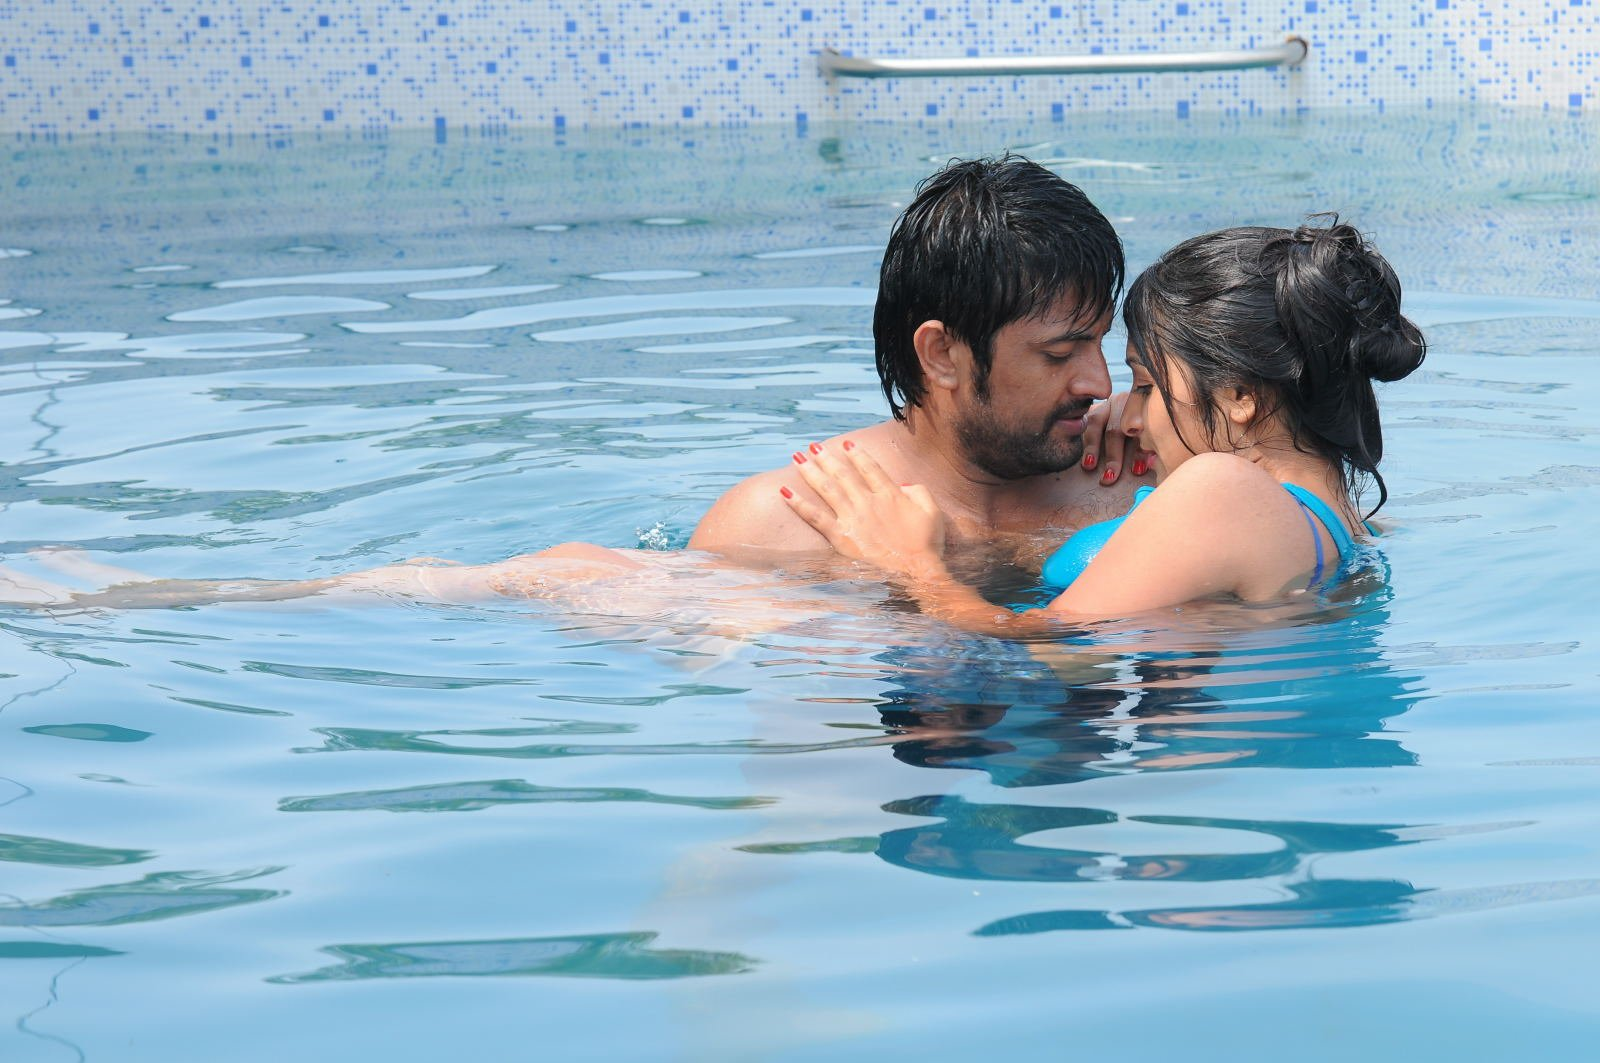 Swimming pool movie latest stills for Latest swimming pool